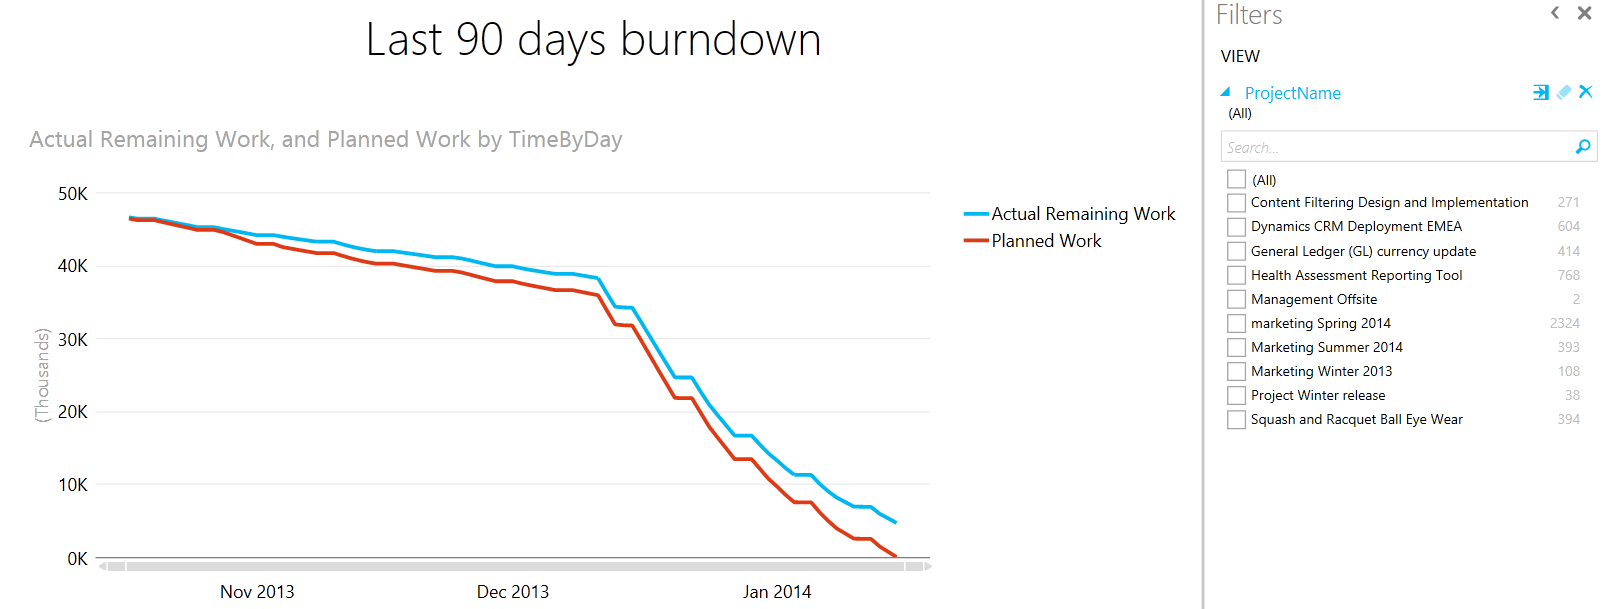 Burndown with Project Filter